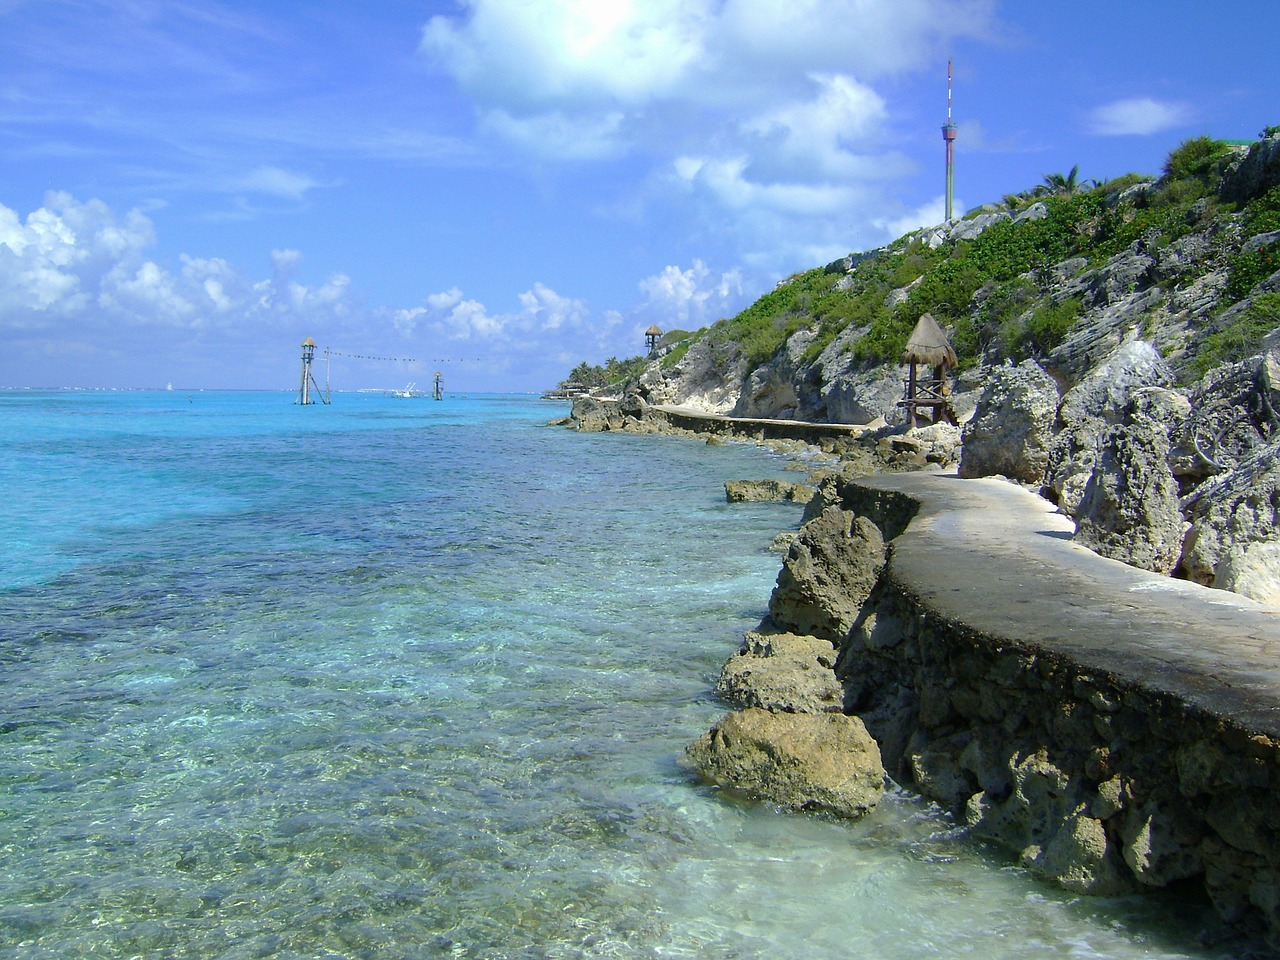 punta sur cozumel mexico free photo